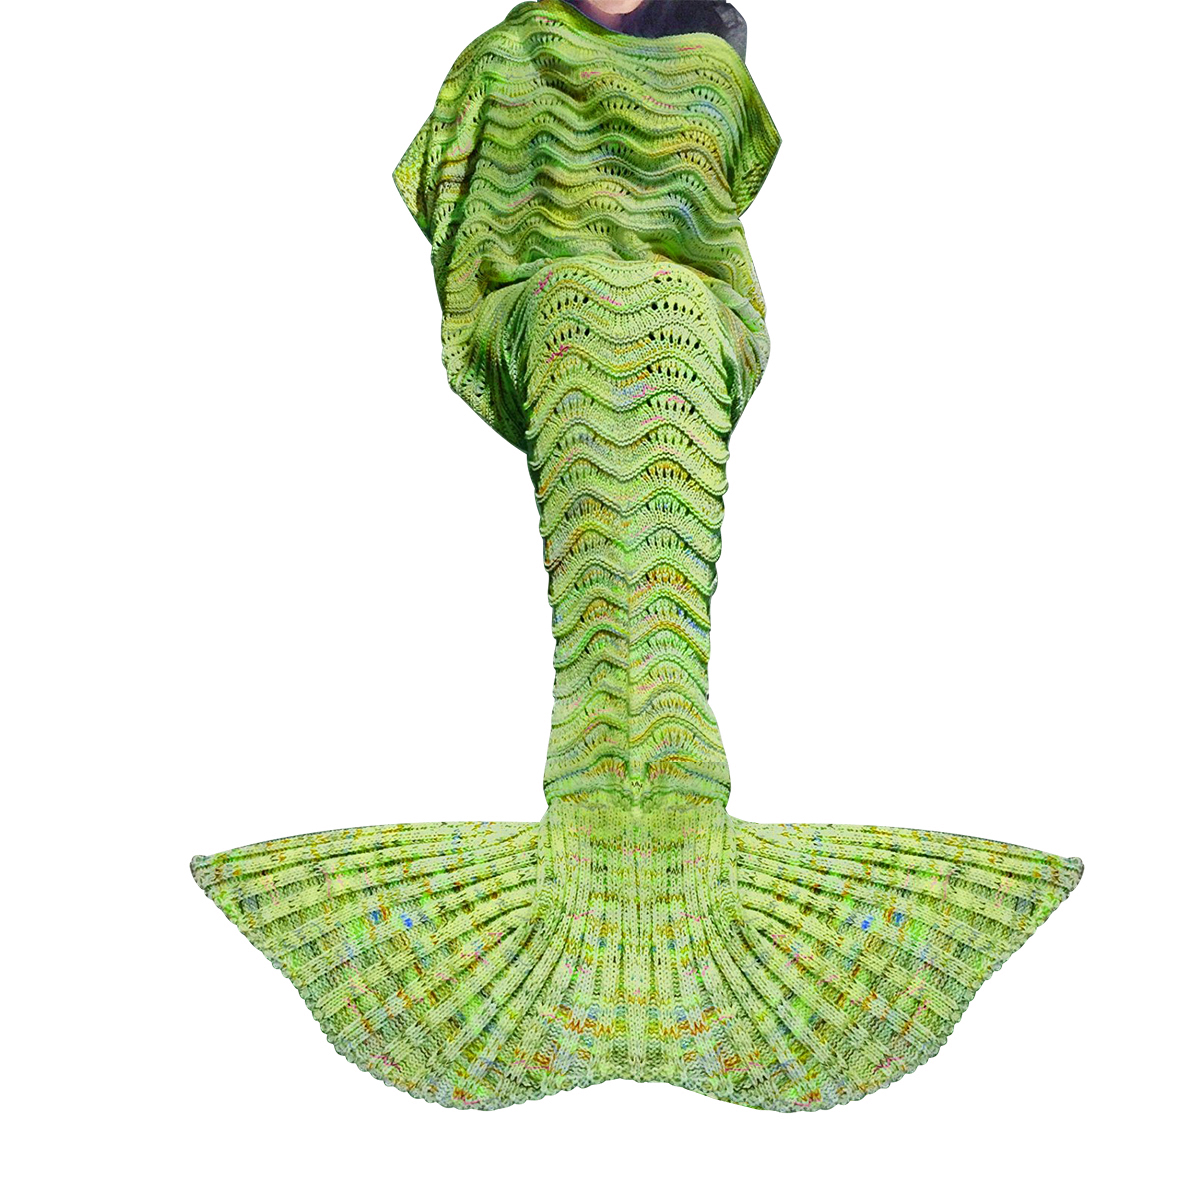 Click here to buy Knitted Mermaid Tail Blanket Crochet Knit Mermaid Blankets for Adults All Season Soft Warm....